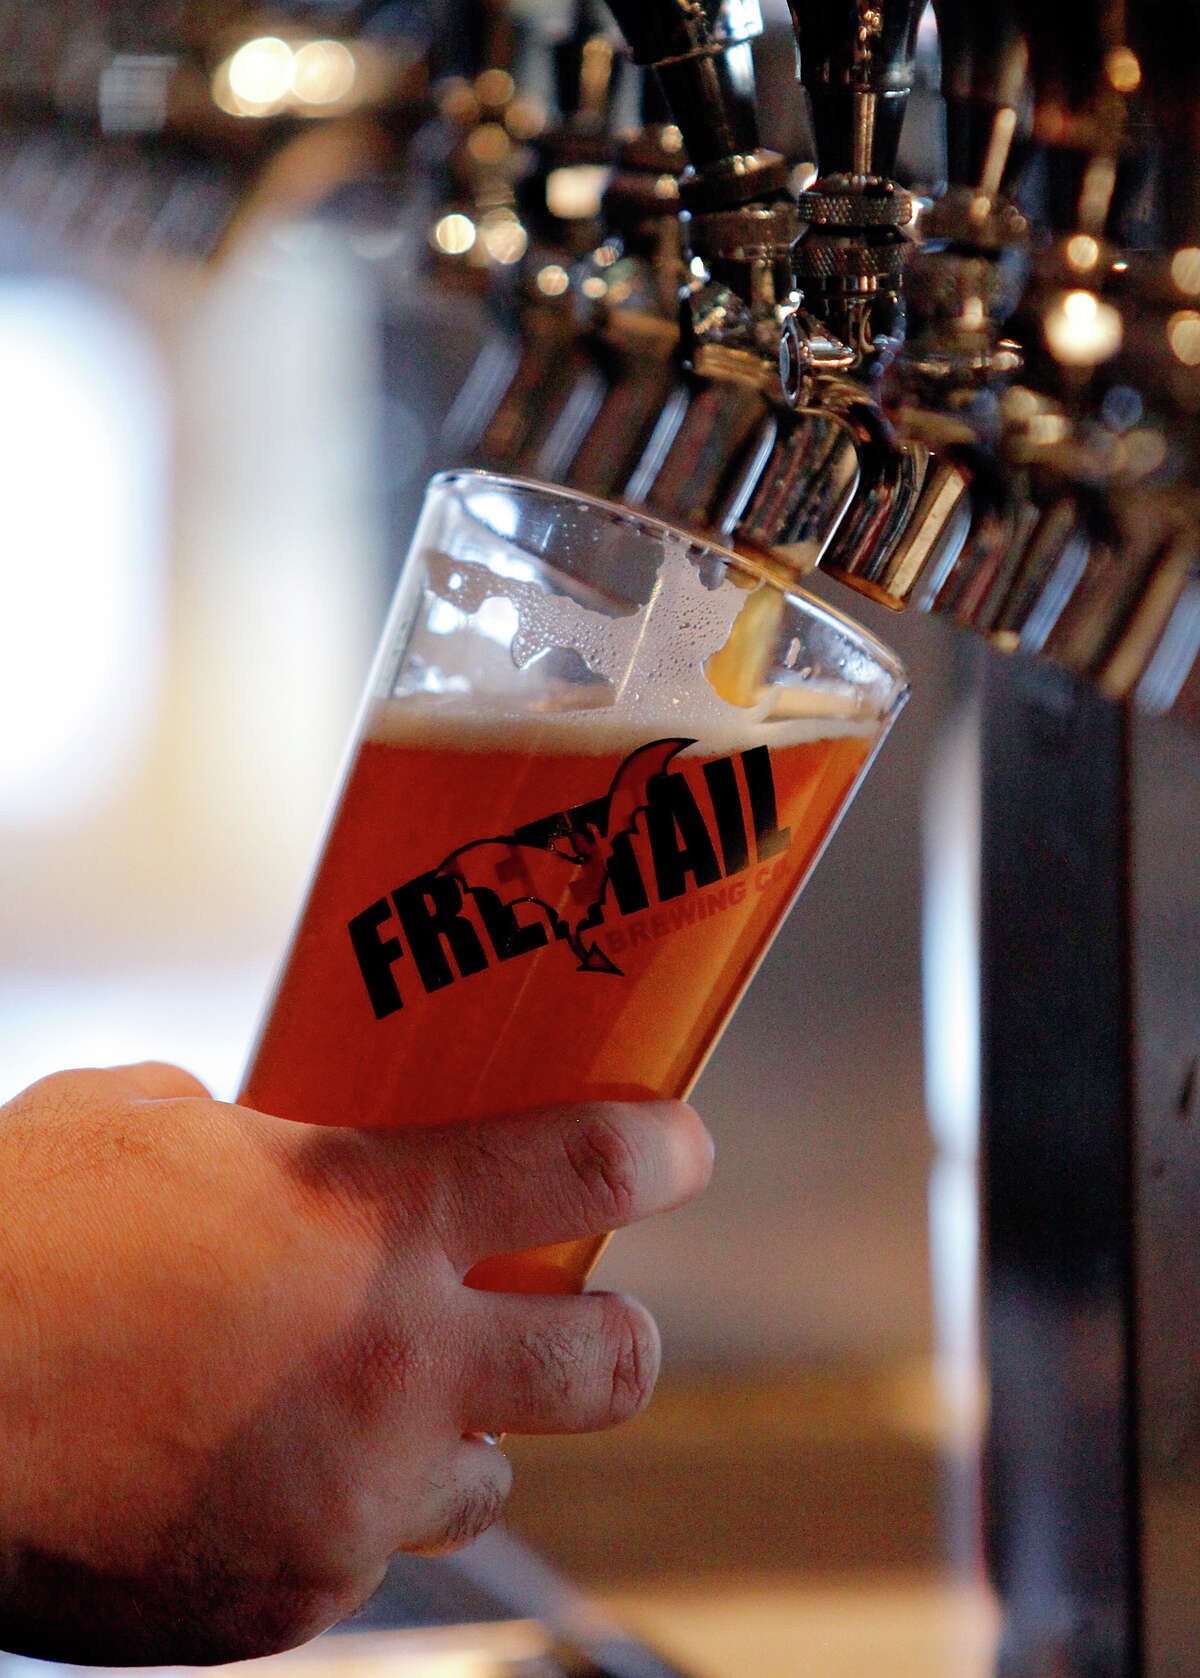 Danny Mijo - Freetail Brewing's Irish Red is a great beer to match its great name. It's also the highest-rated Irish Red available in San Antonio according to Beer Advocate.